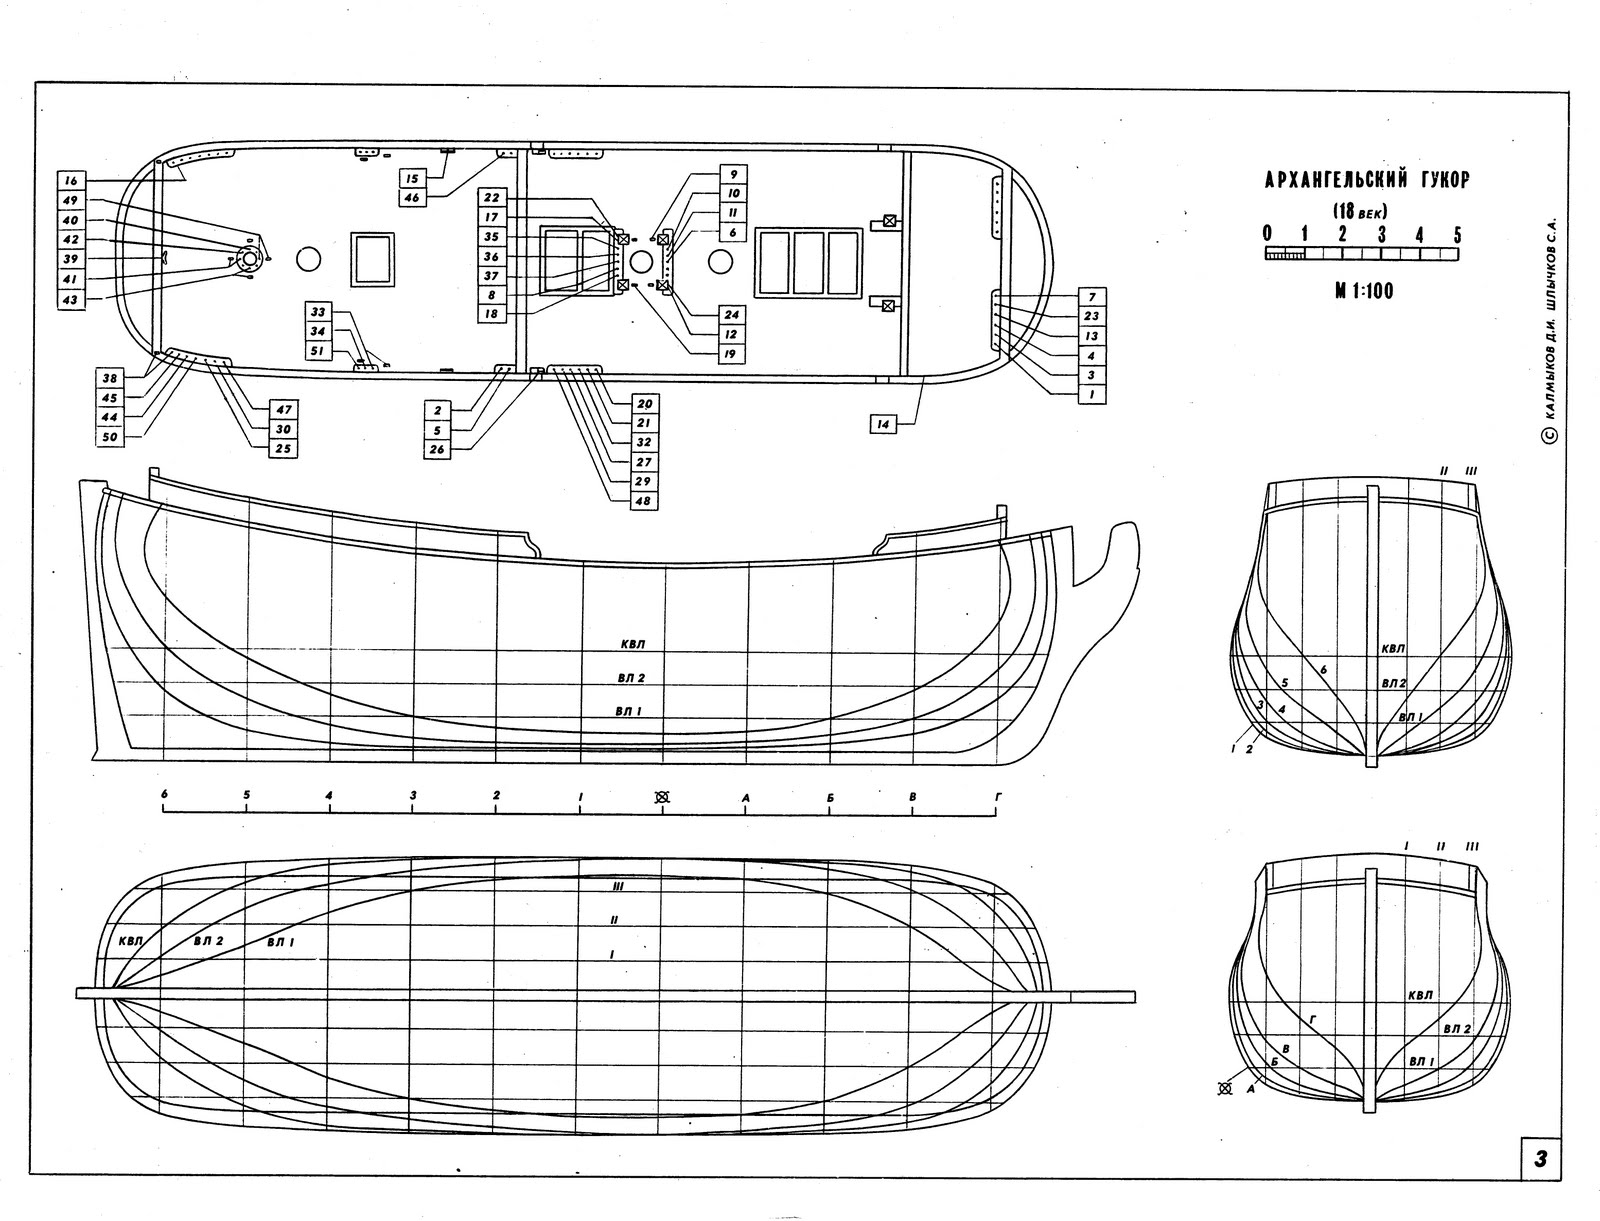 Model ship plans free download gukor modelship Blueprint designer free